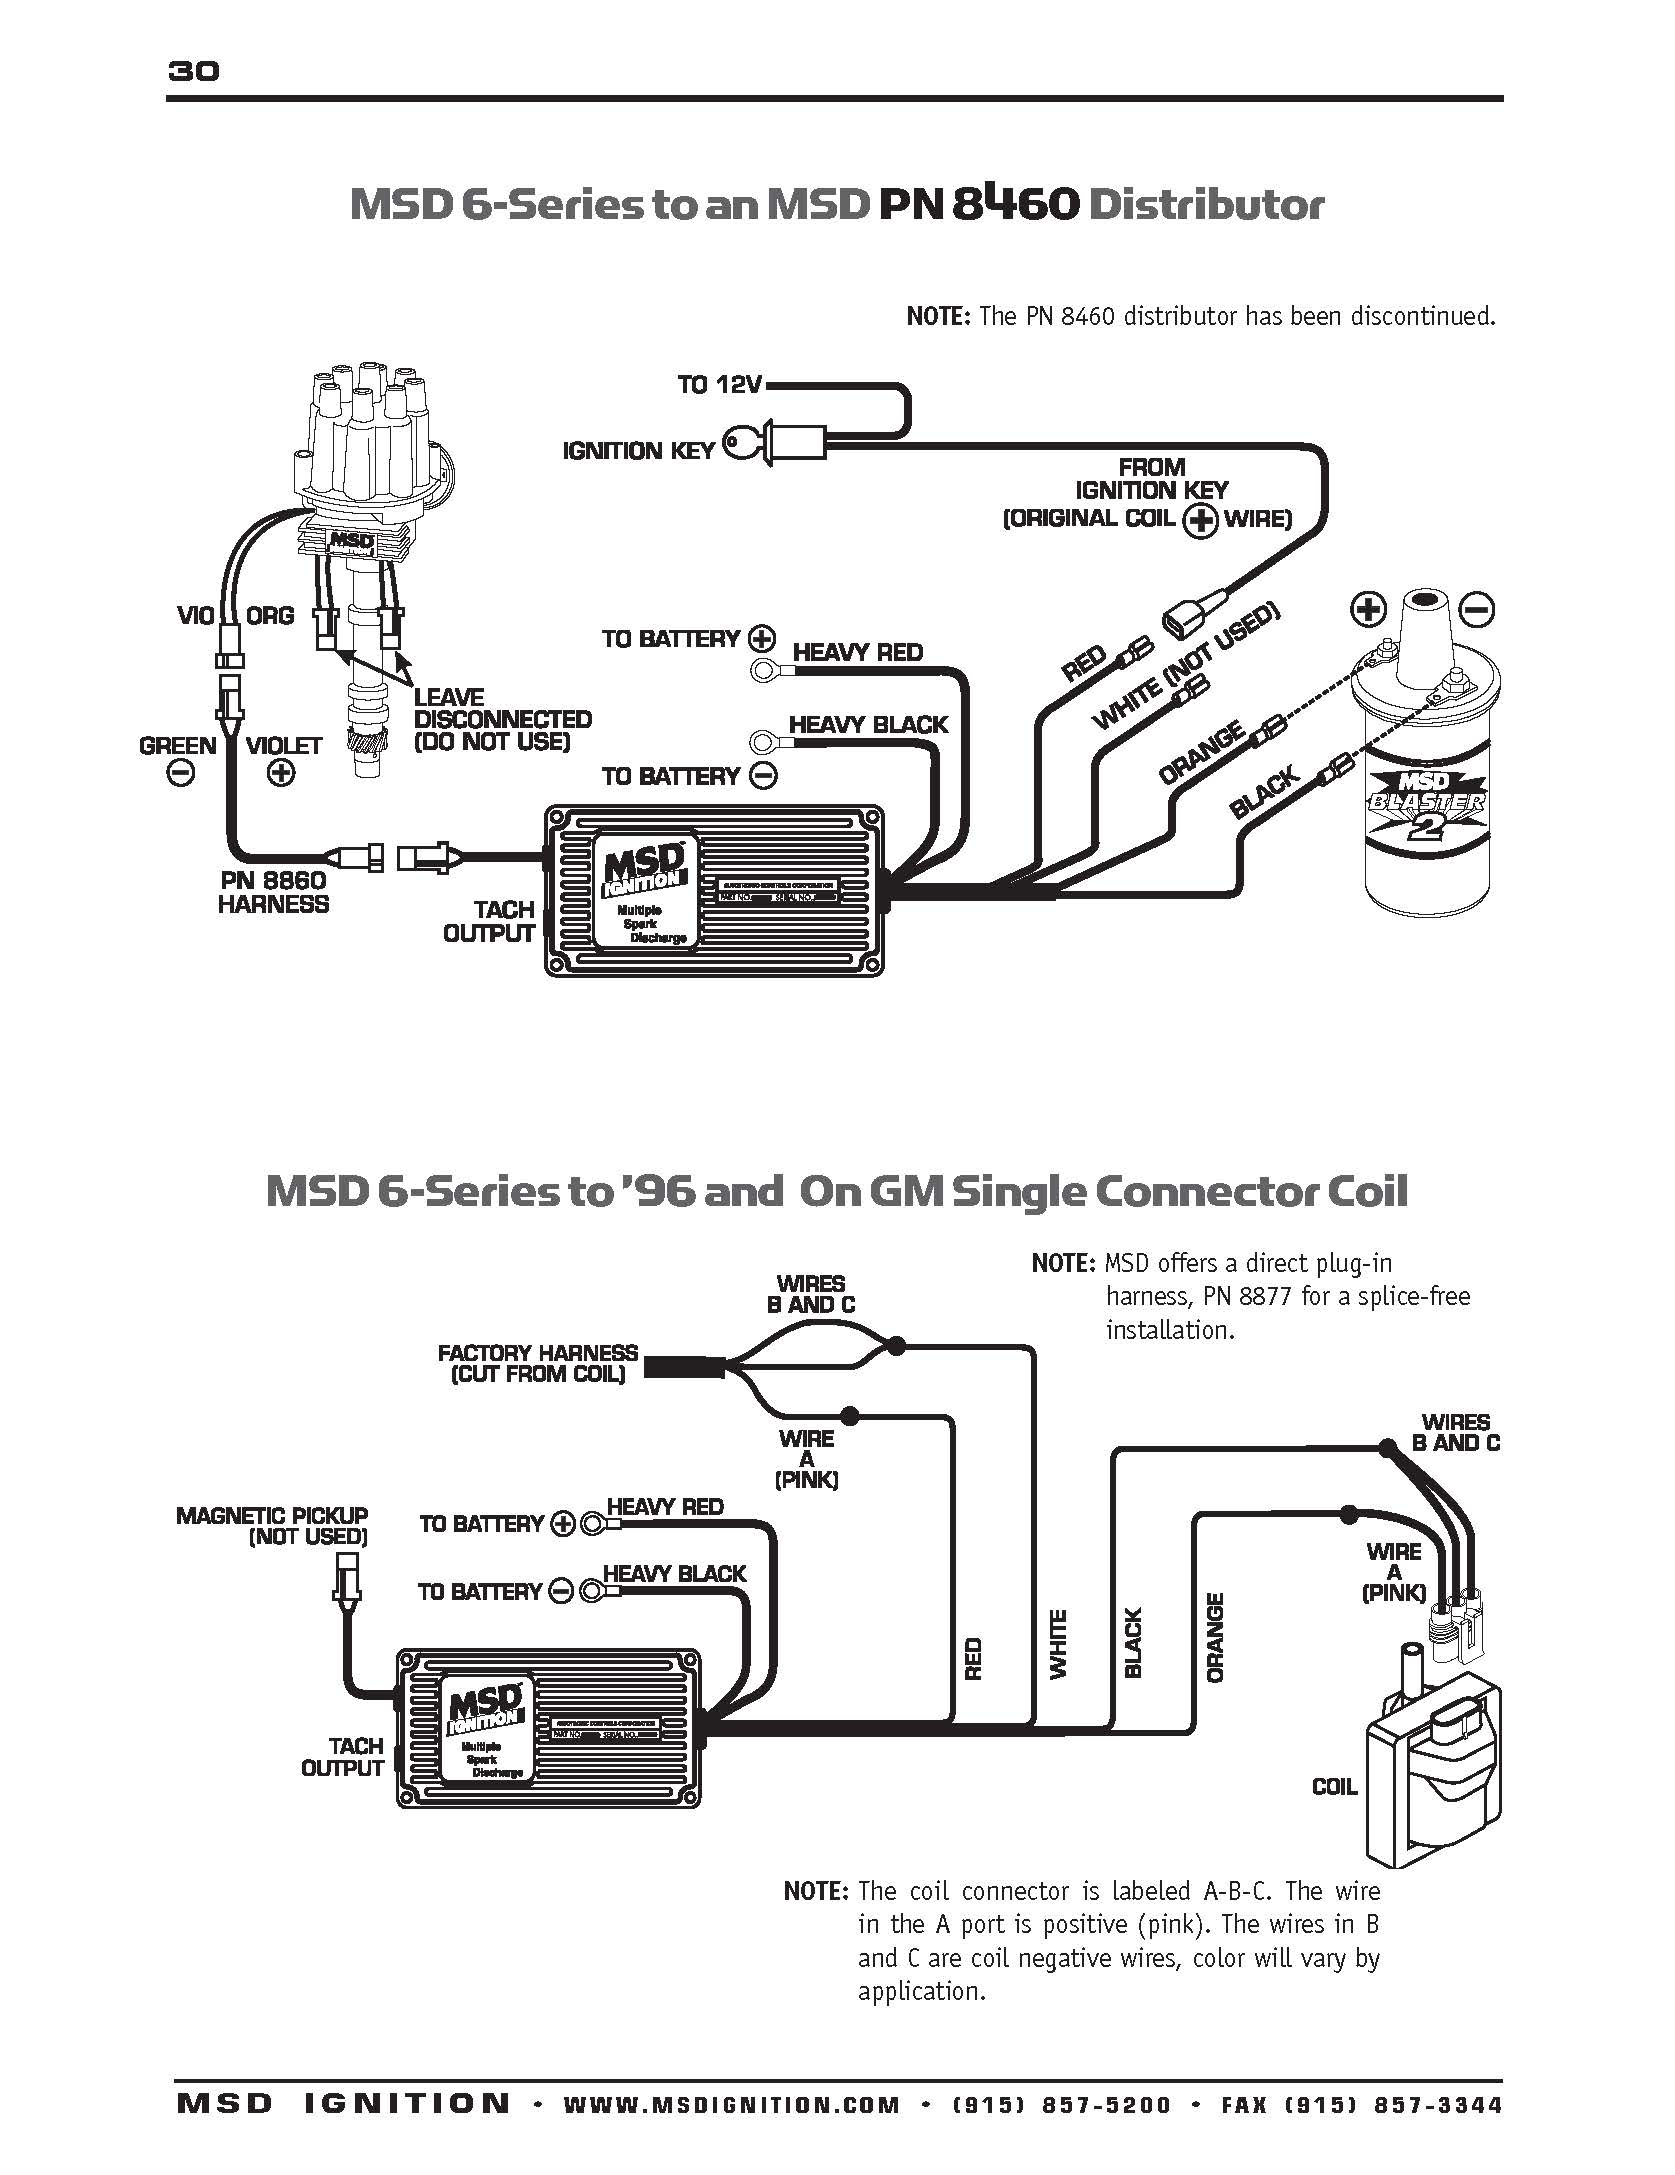 Msd Wiring Diagram - Wiring Diagrams Hubs - Msd Ignition Wiring Diagram